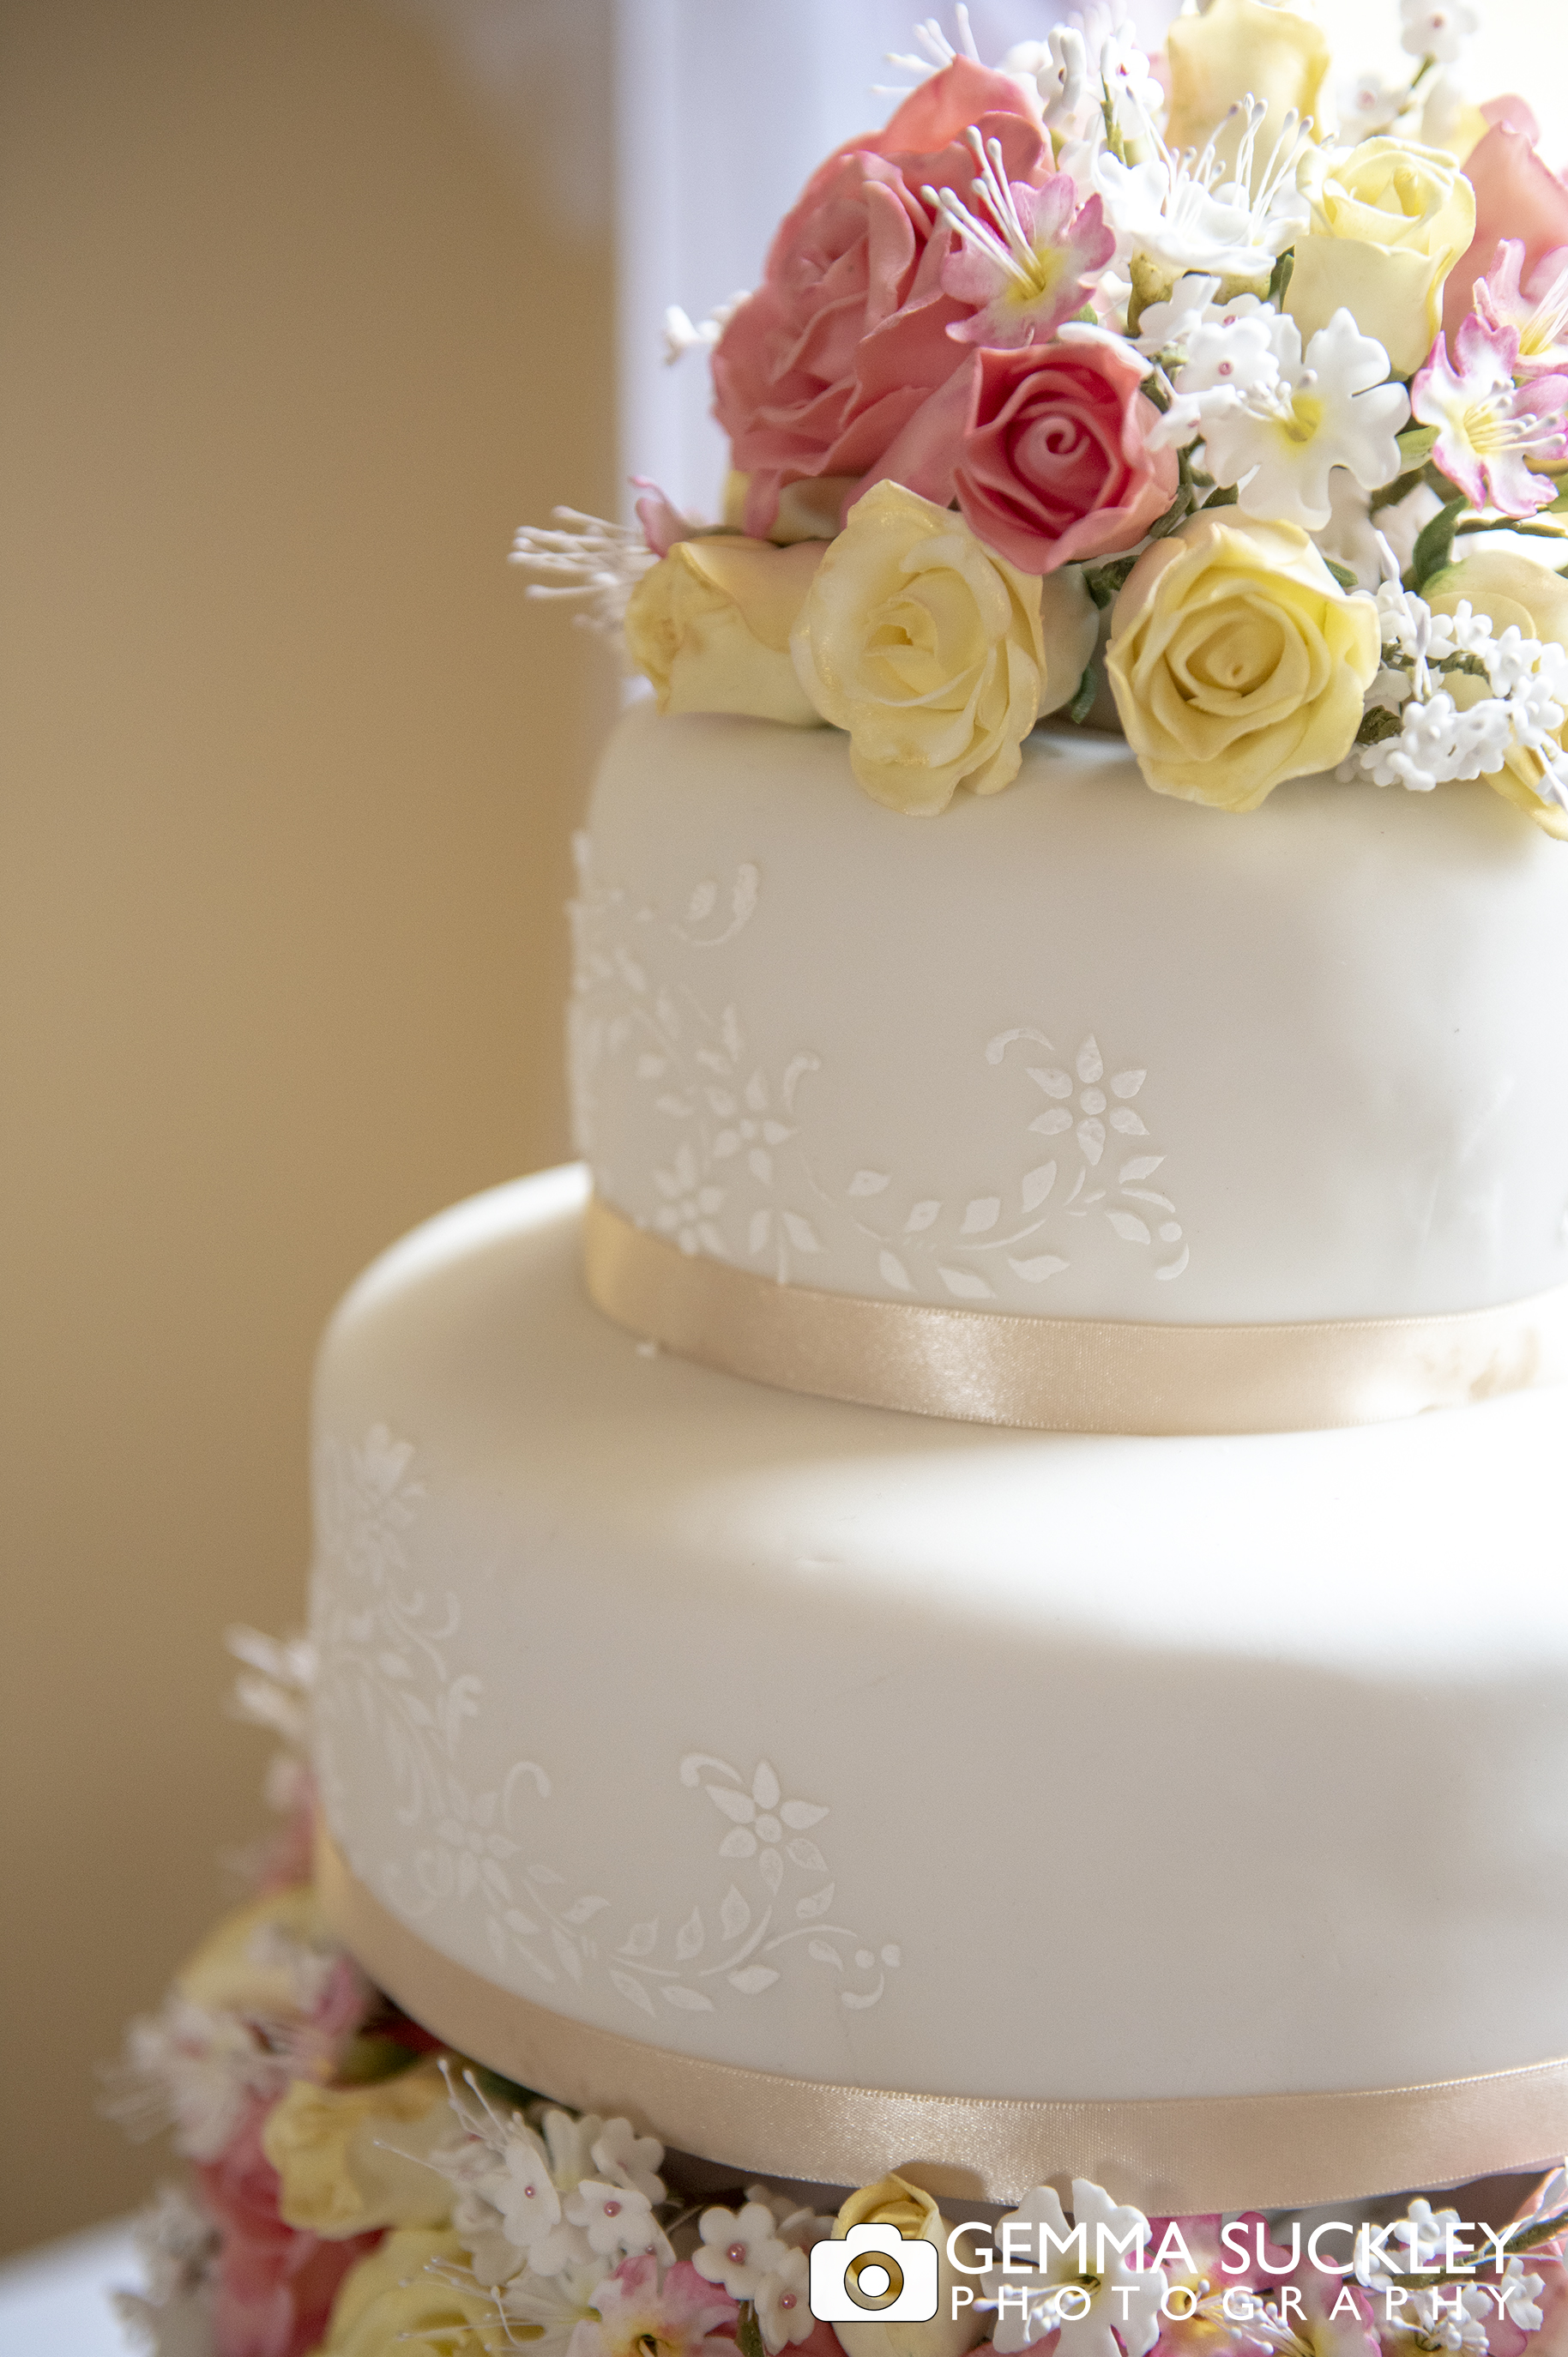 close up photo of a wedding cake topped with flowers